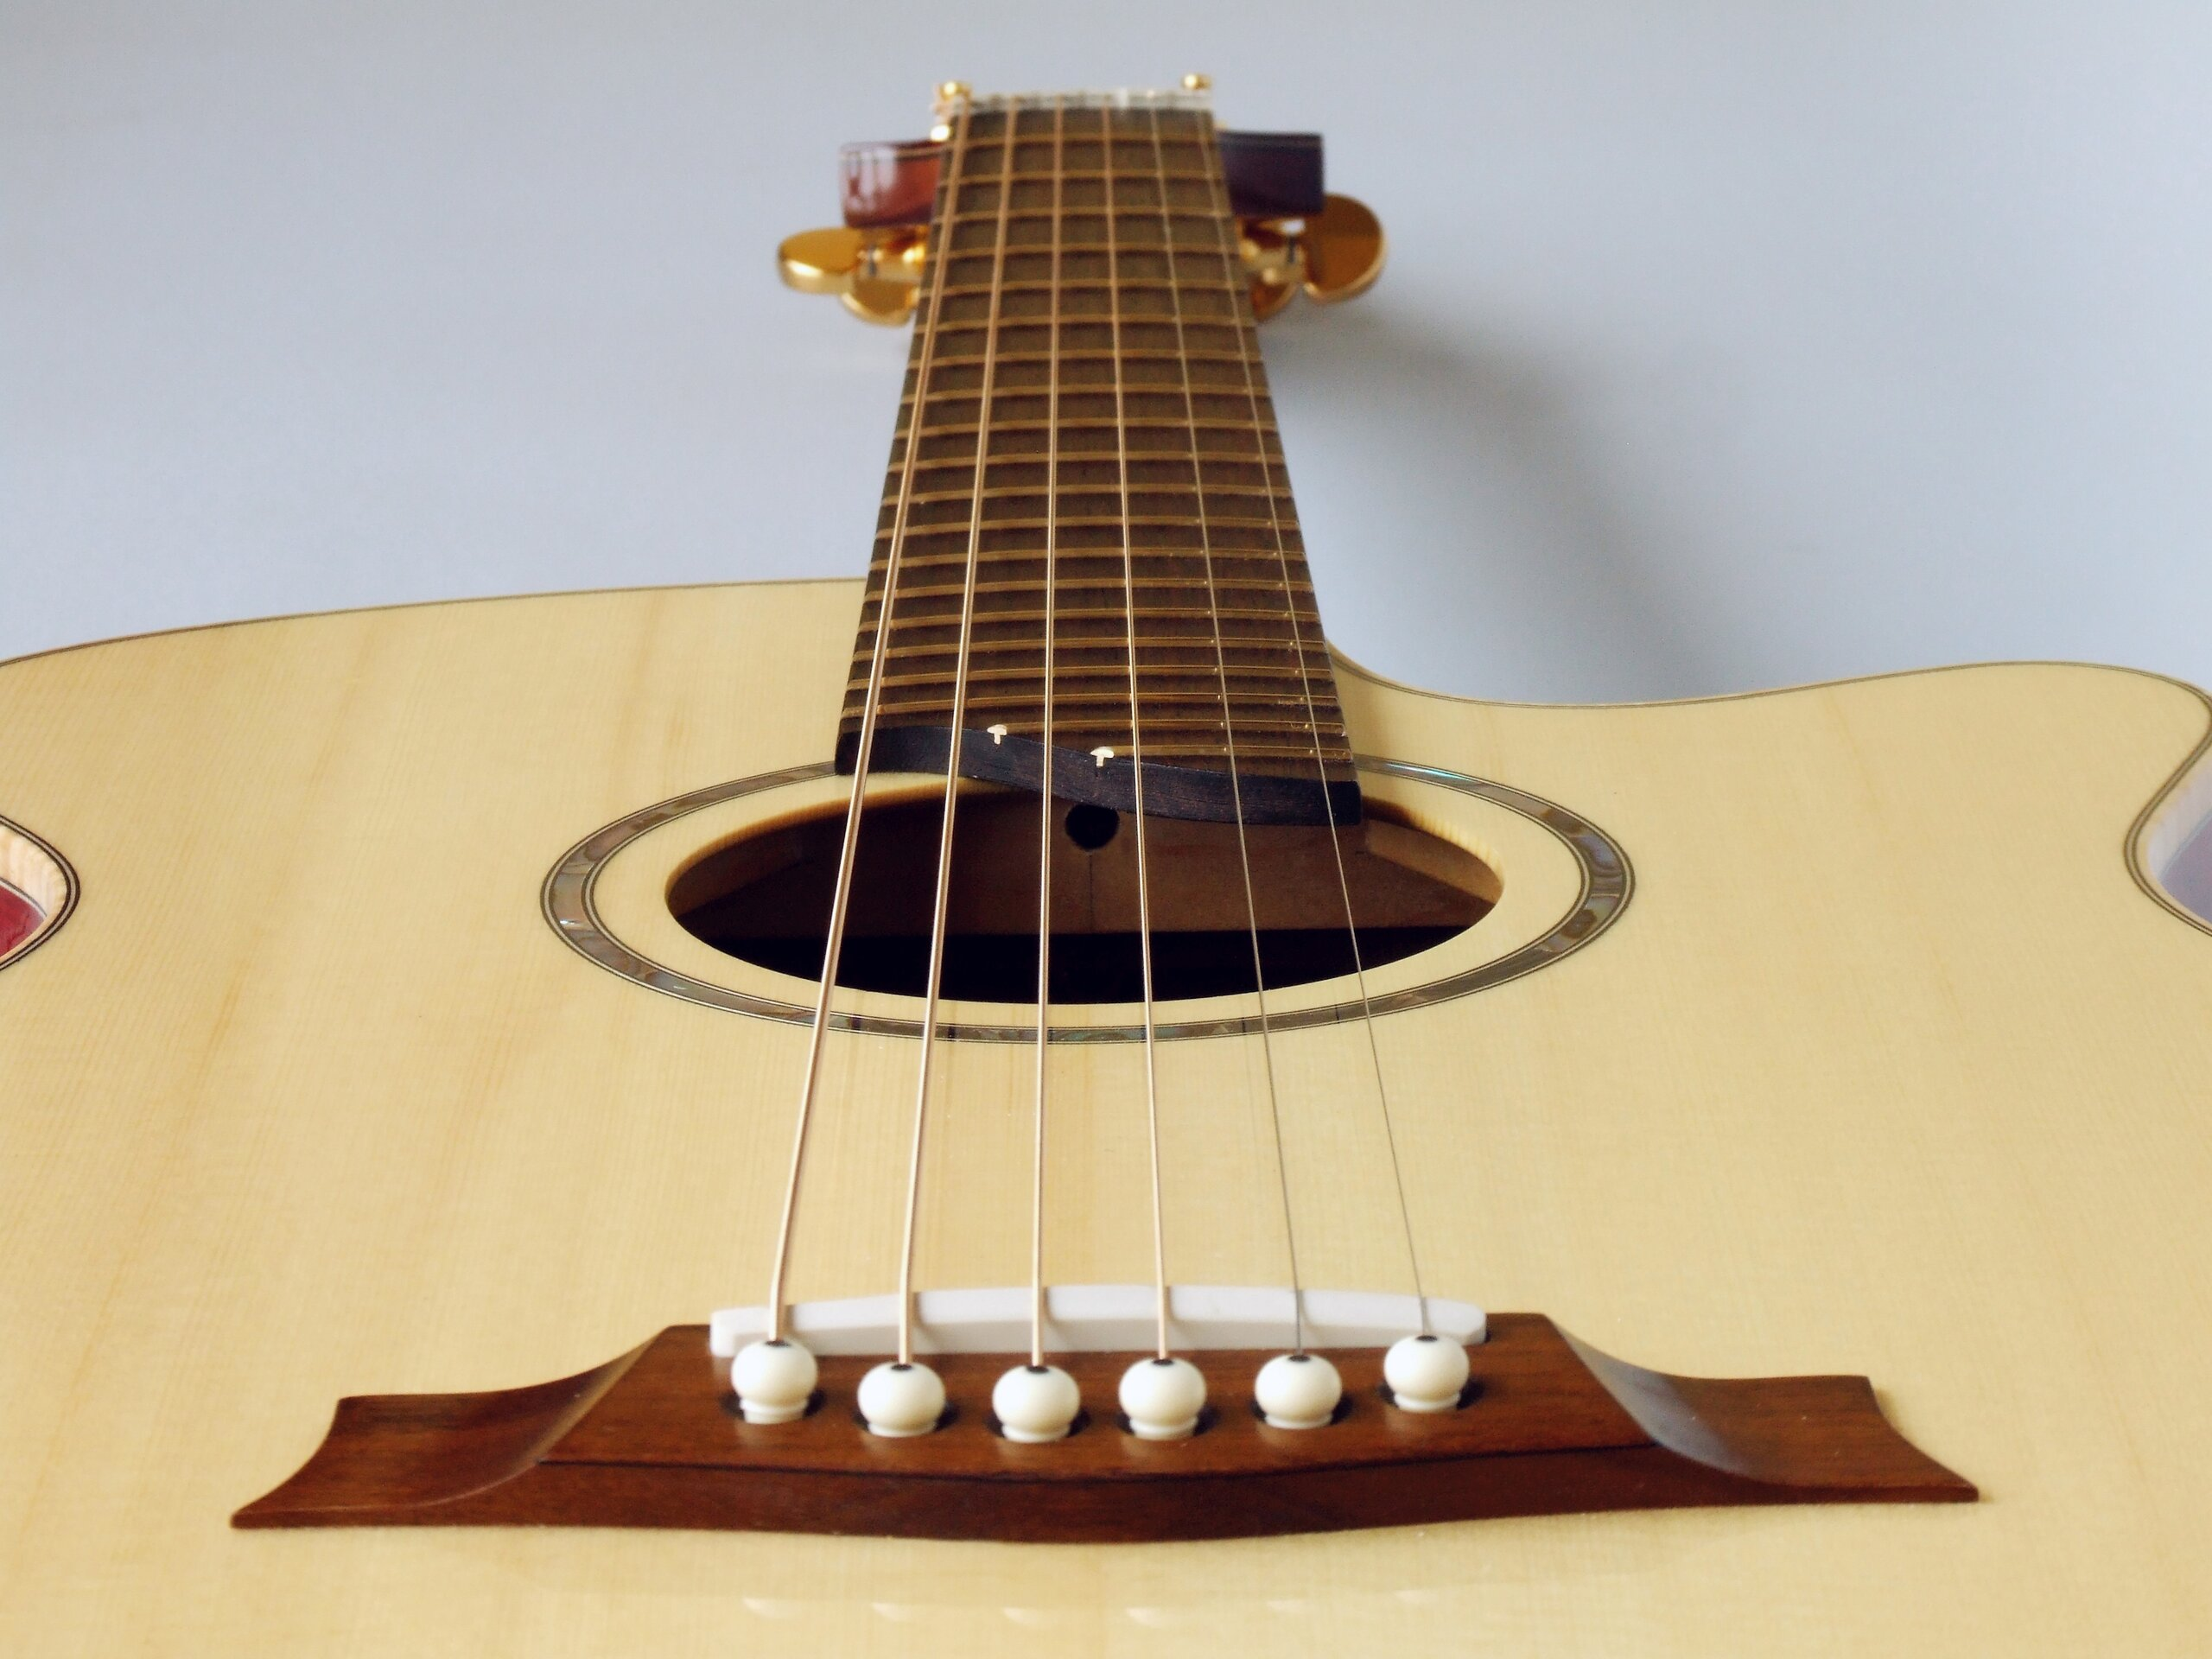 View from the bridge of a spruce top steel string guitar